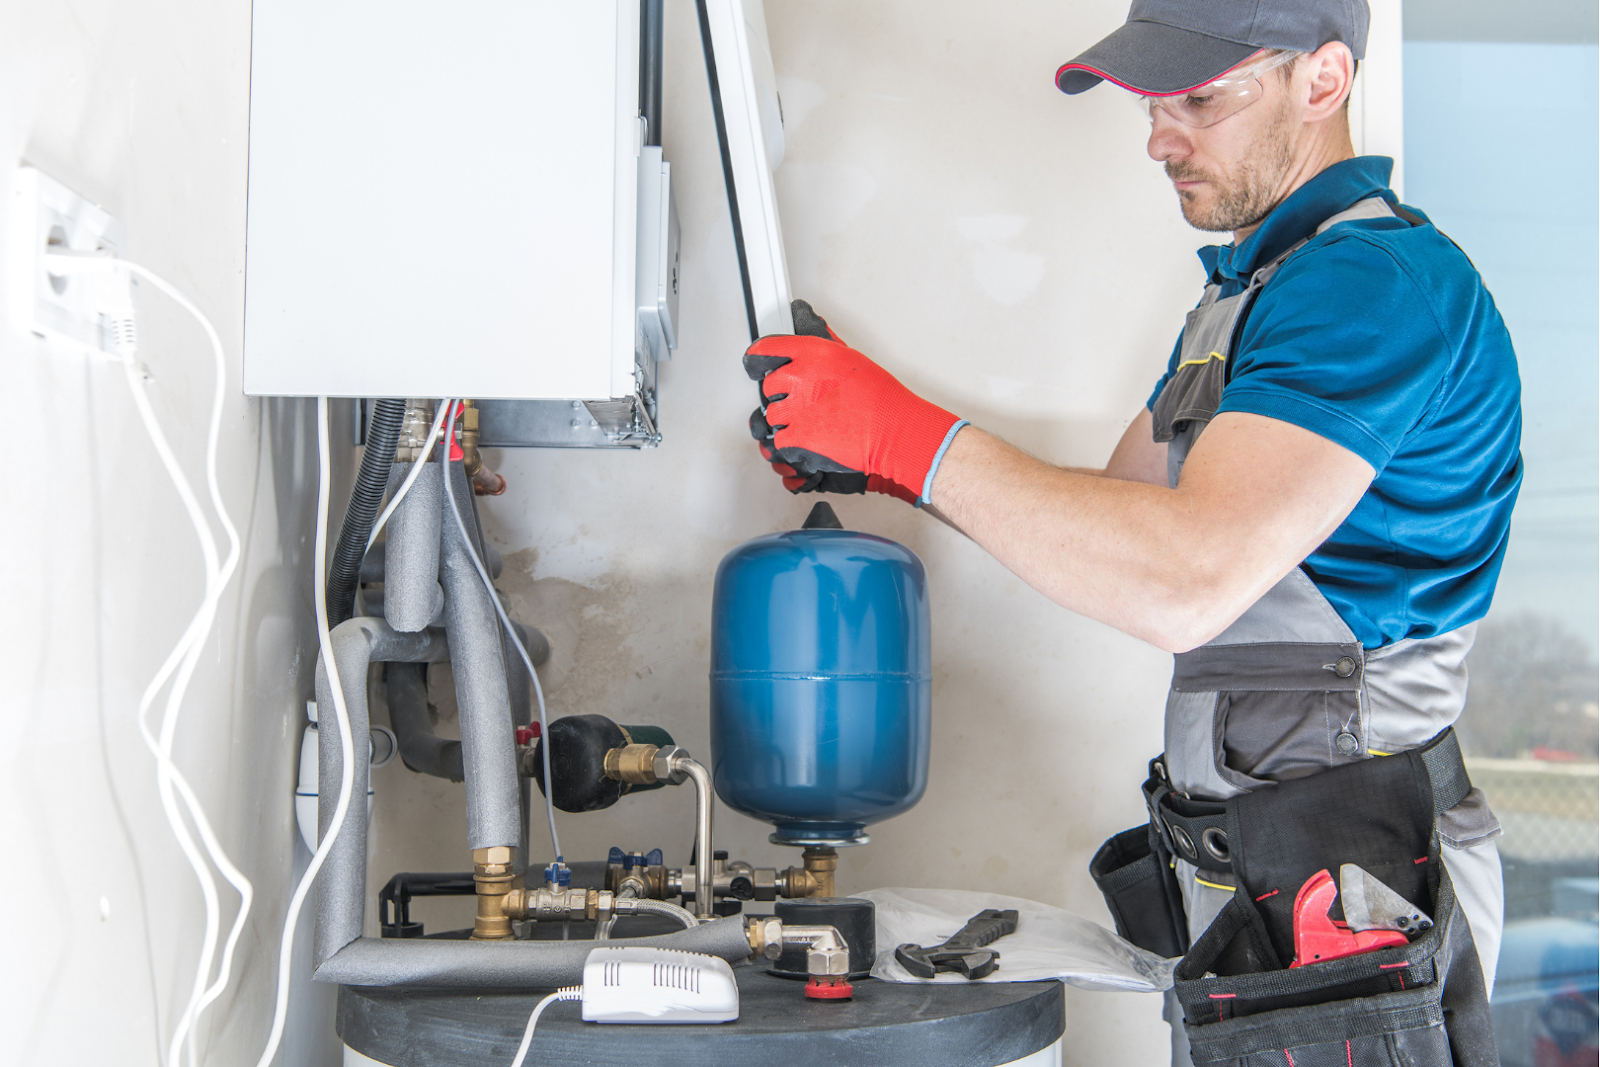 New Tankless Water Heater being installed in Modesto